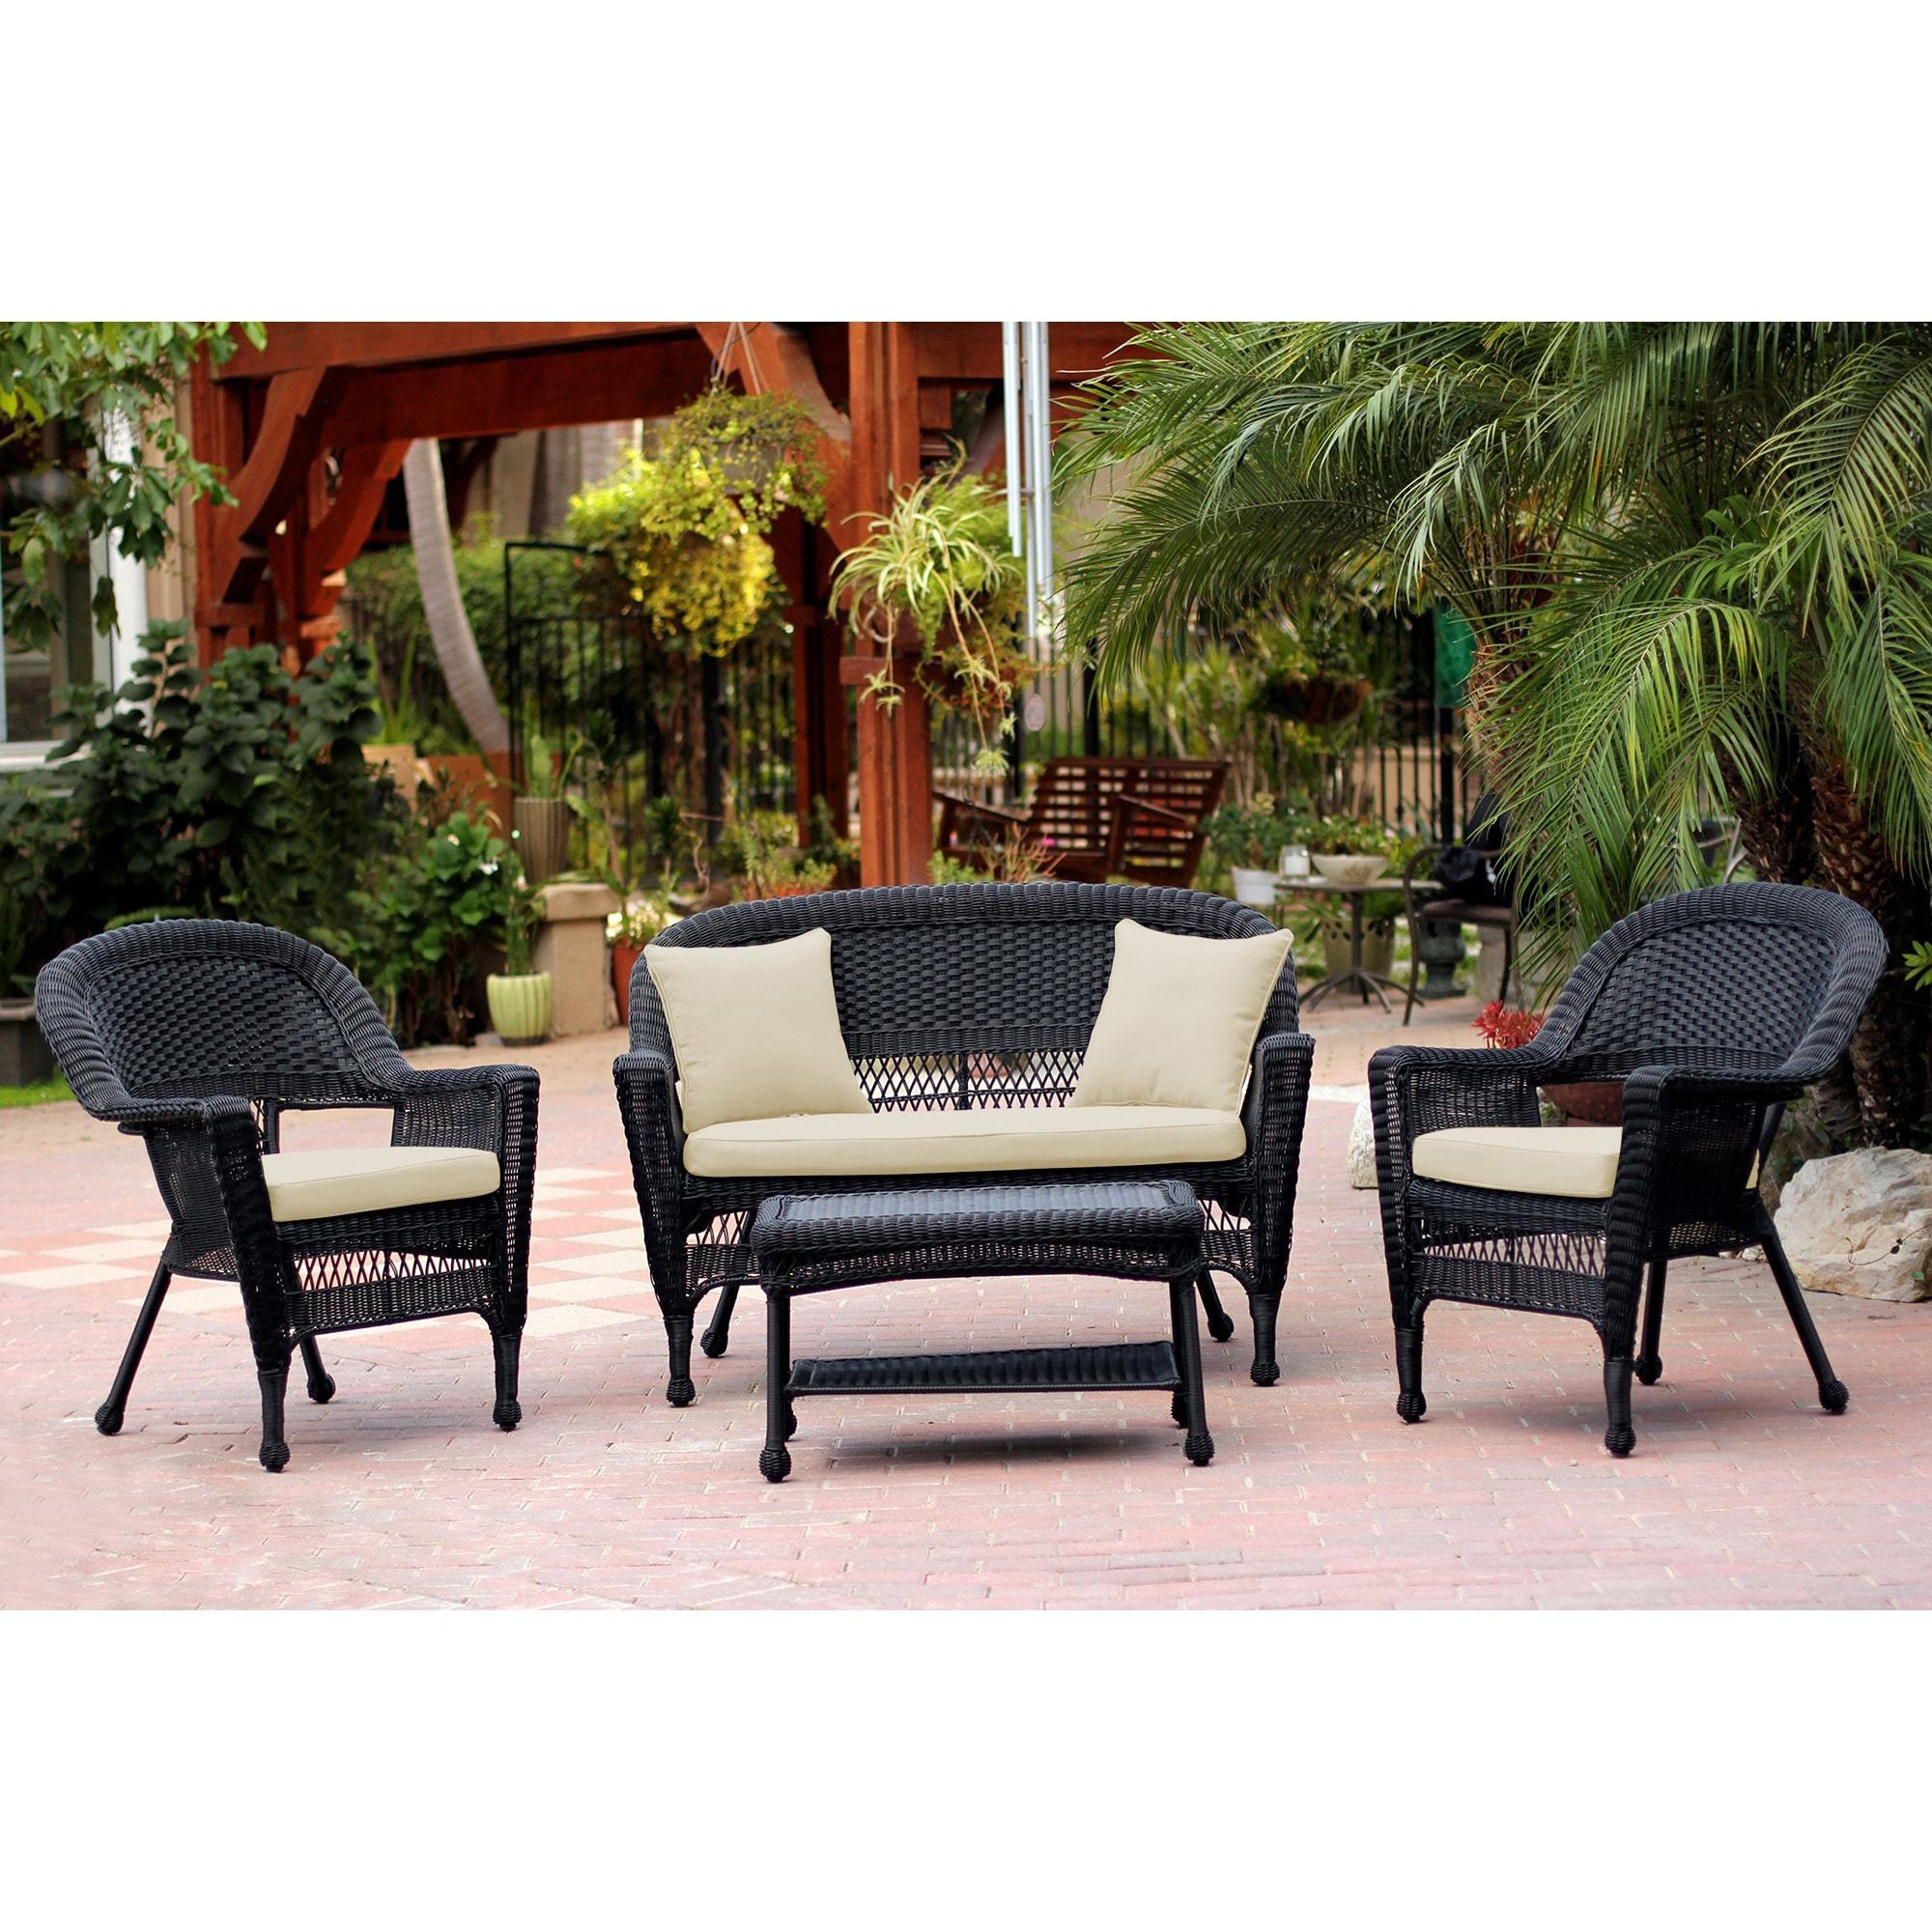 Black Wicker 4 Piece Patio